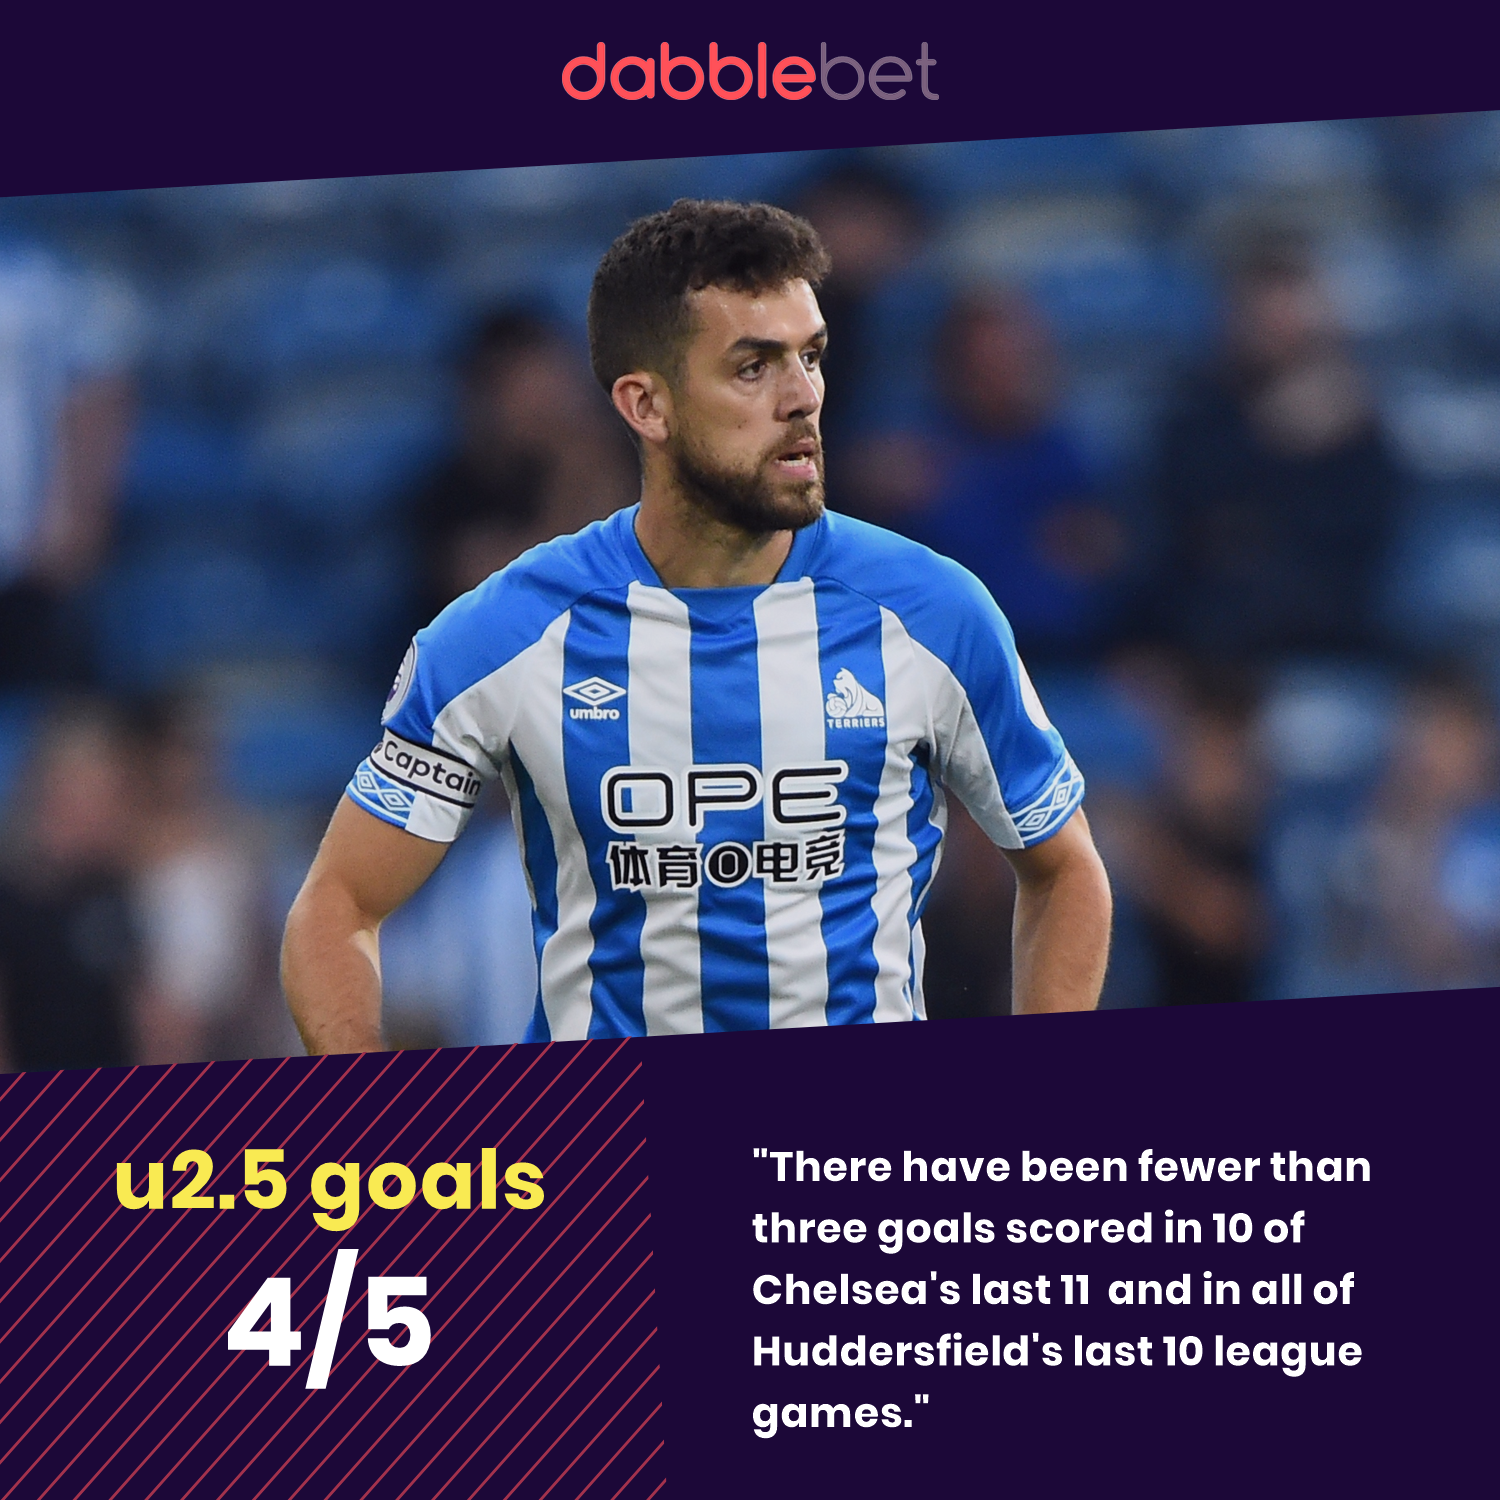 Huddersfield Chelsea graphic